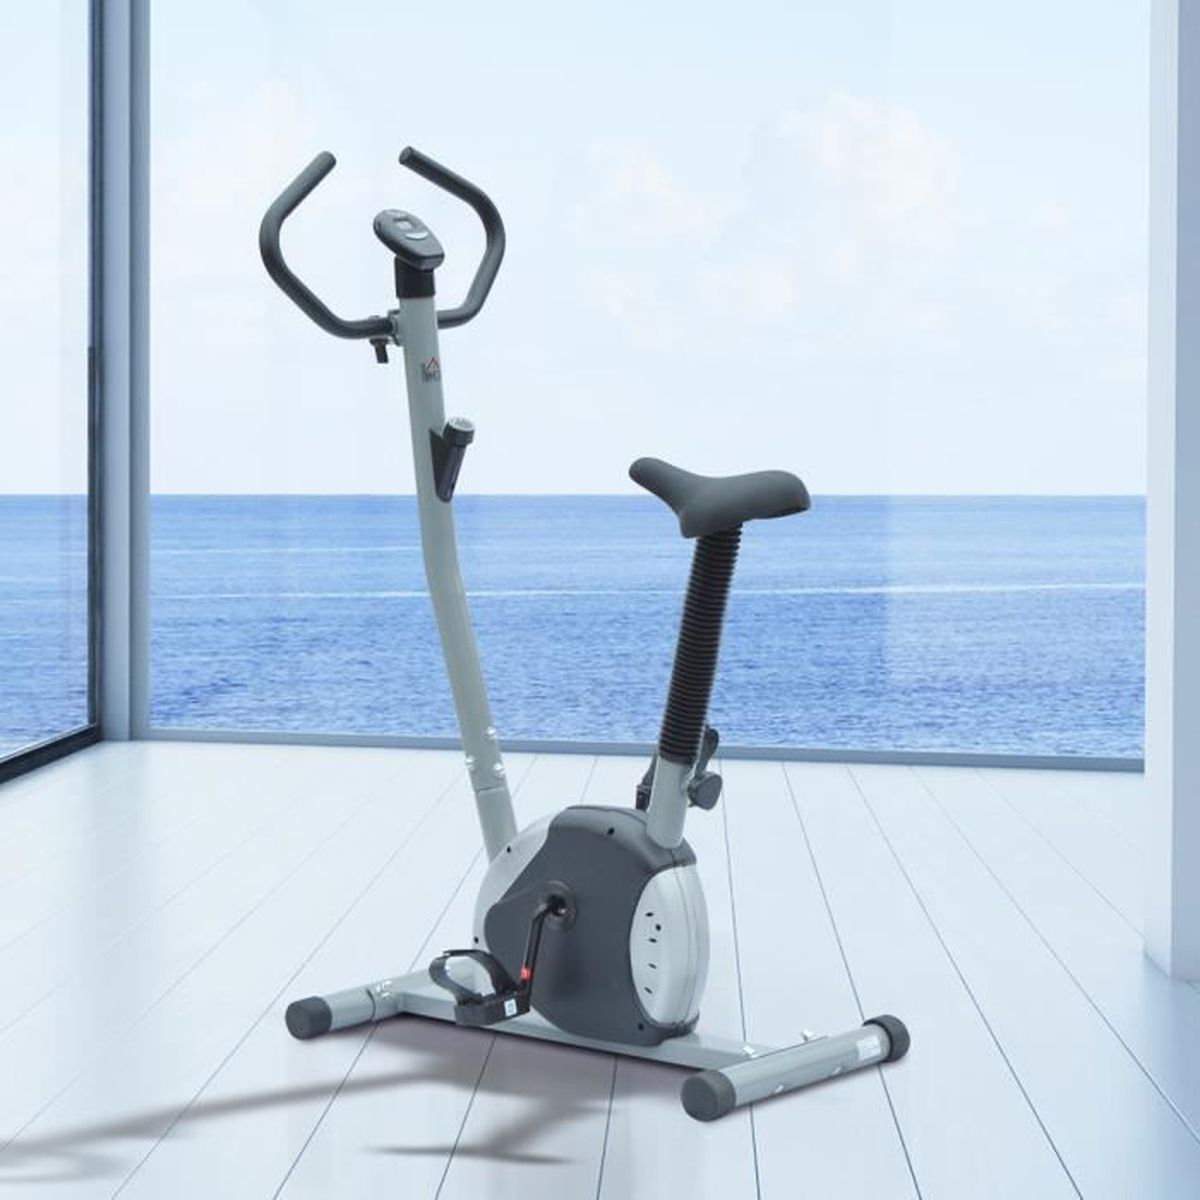 V lo d appartement exercice cardio compteur lcd guidon - Prix velo d appartement ...